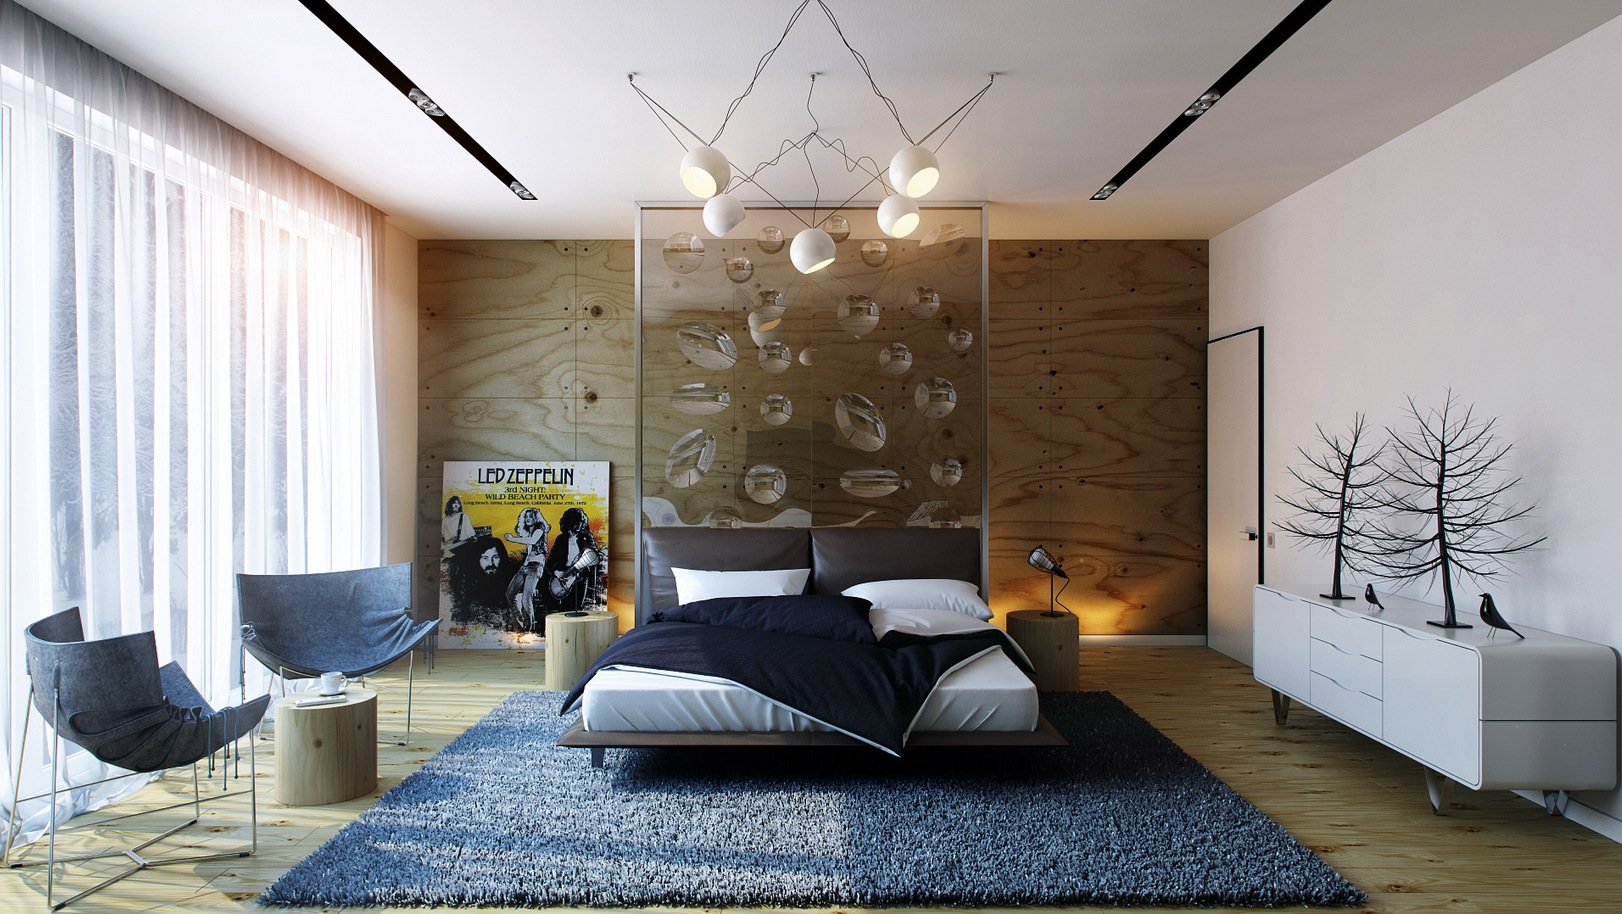 20 modern bedroom designs for Different bedroom decorating ideas